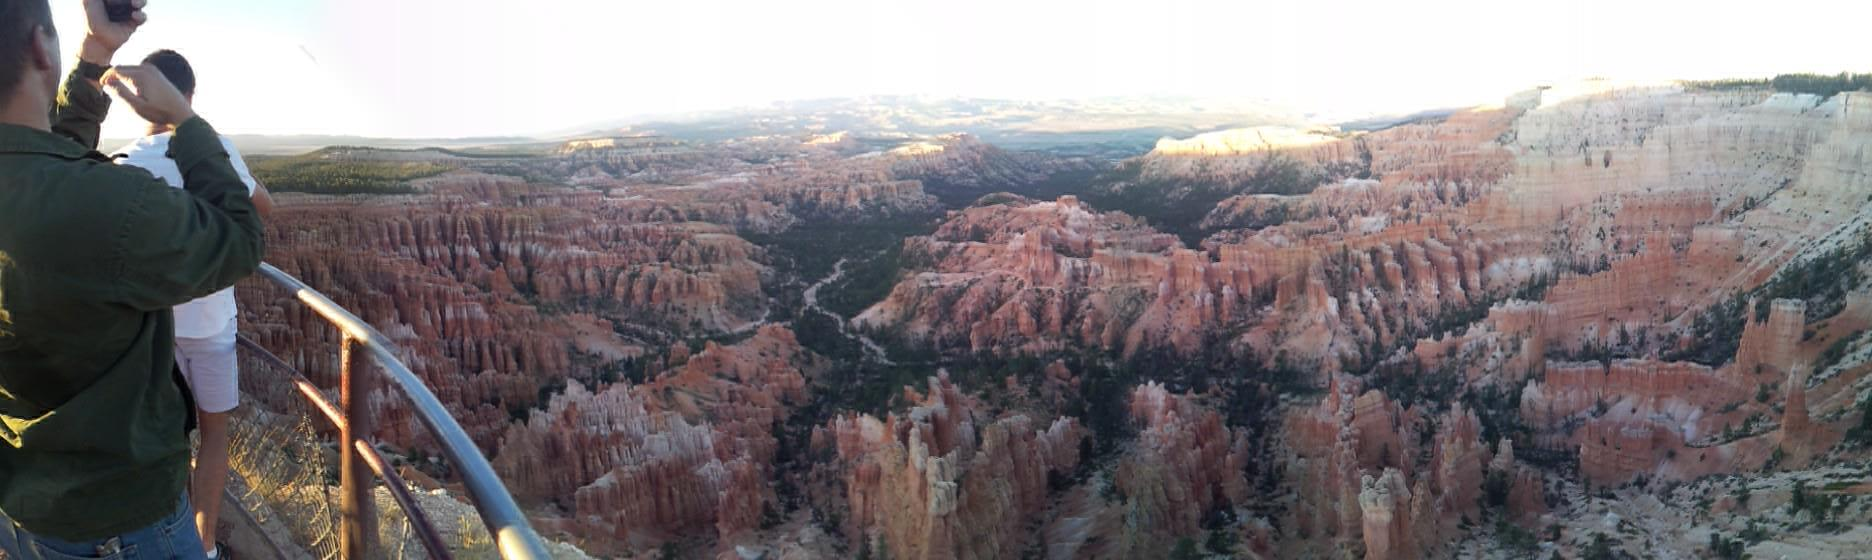 A panorama of the Bryce Canyon amphitheater